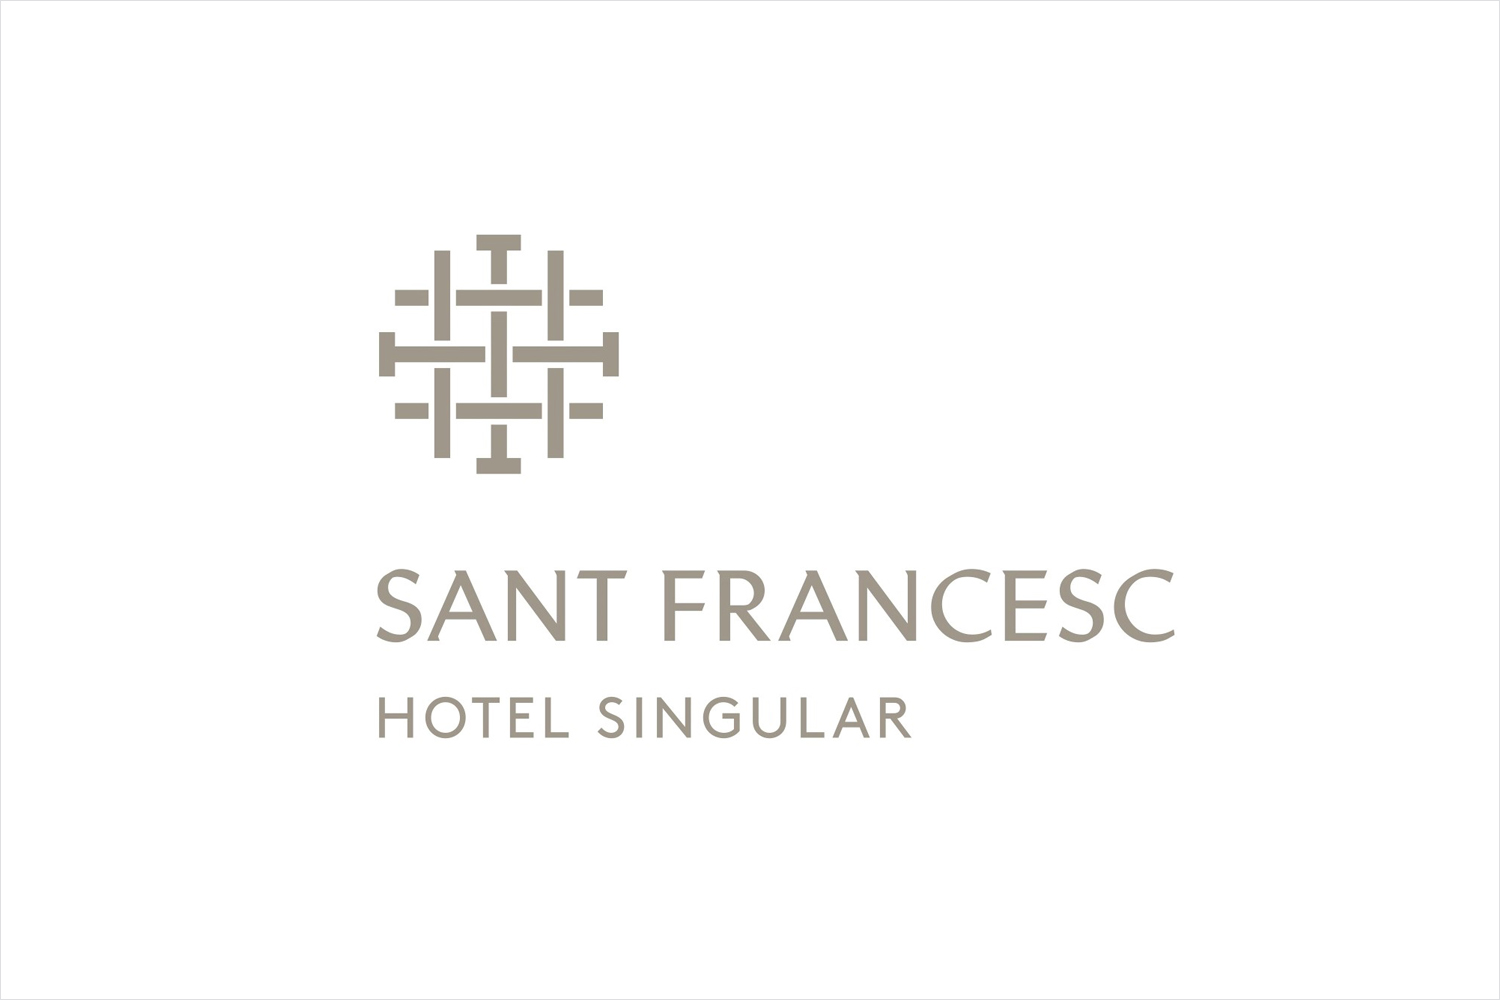 Logo designed by Mucho for Spanish 5-star hotel Sant Francesc.